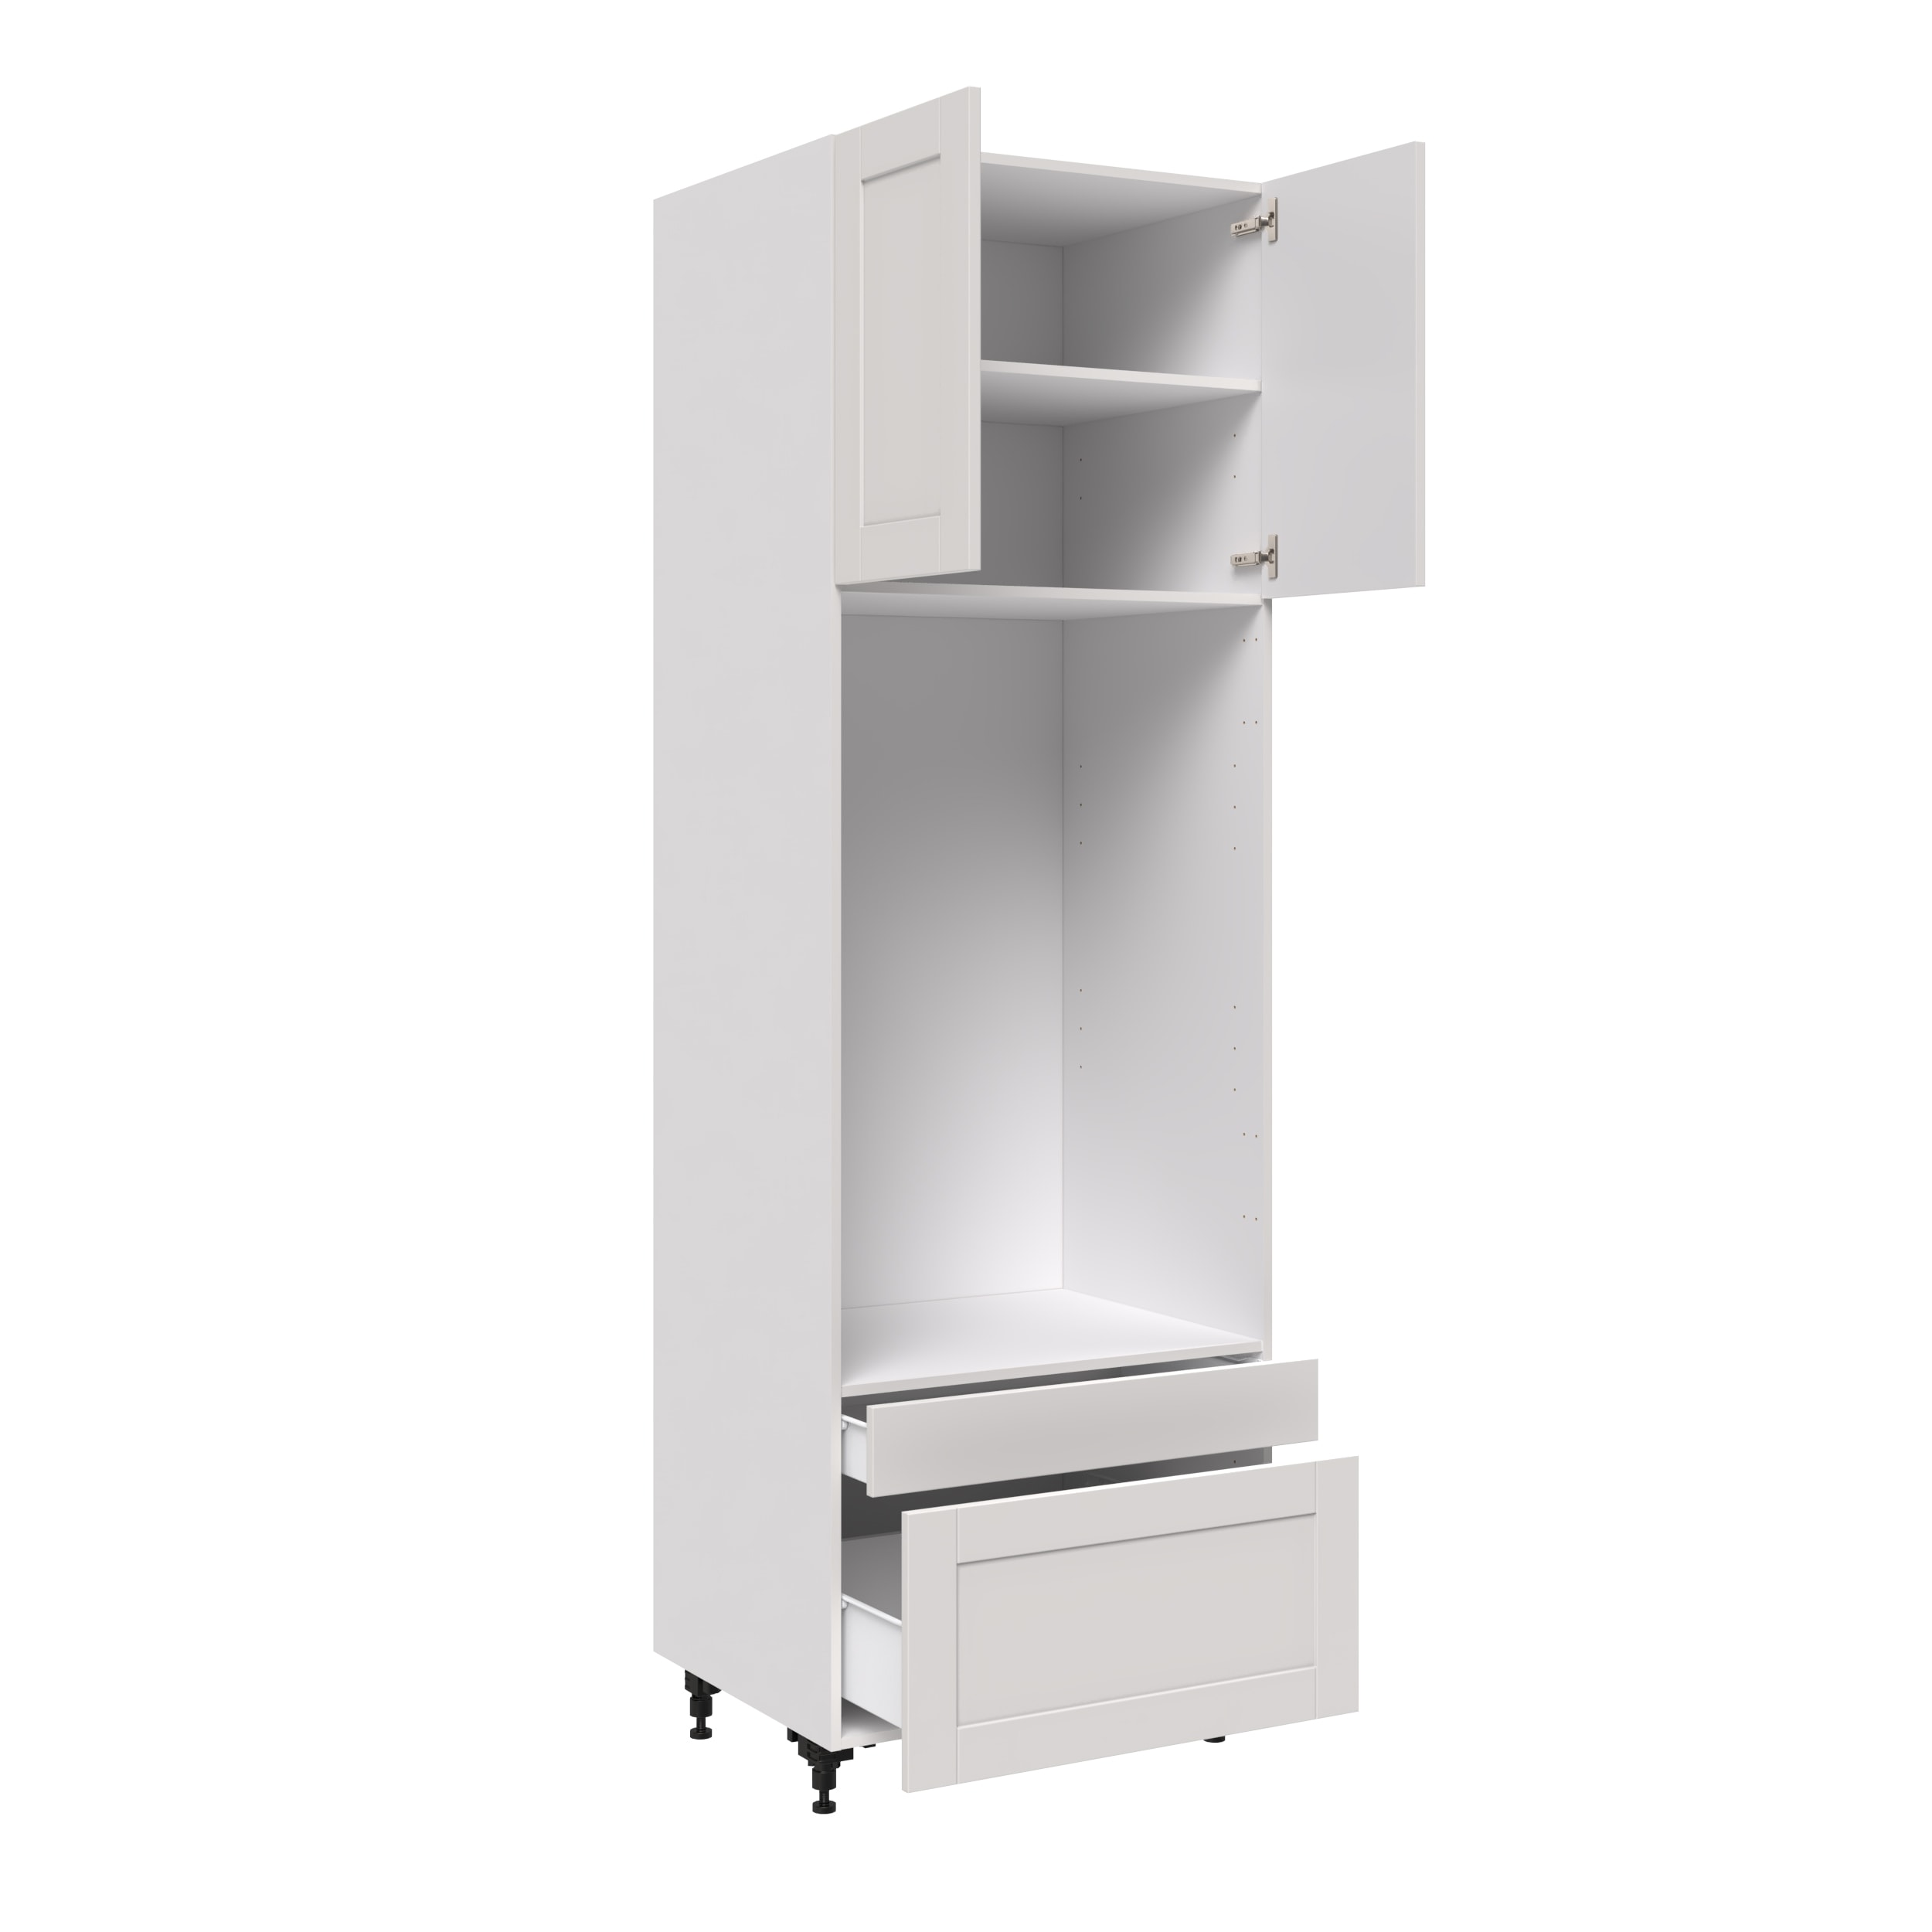 30 Tall For Micro Wall Oven With 2 Doors And 2 Drawers